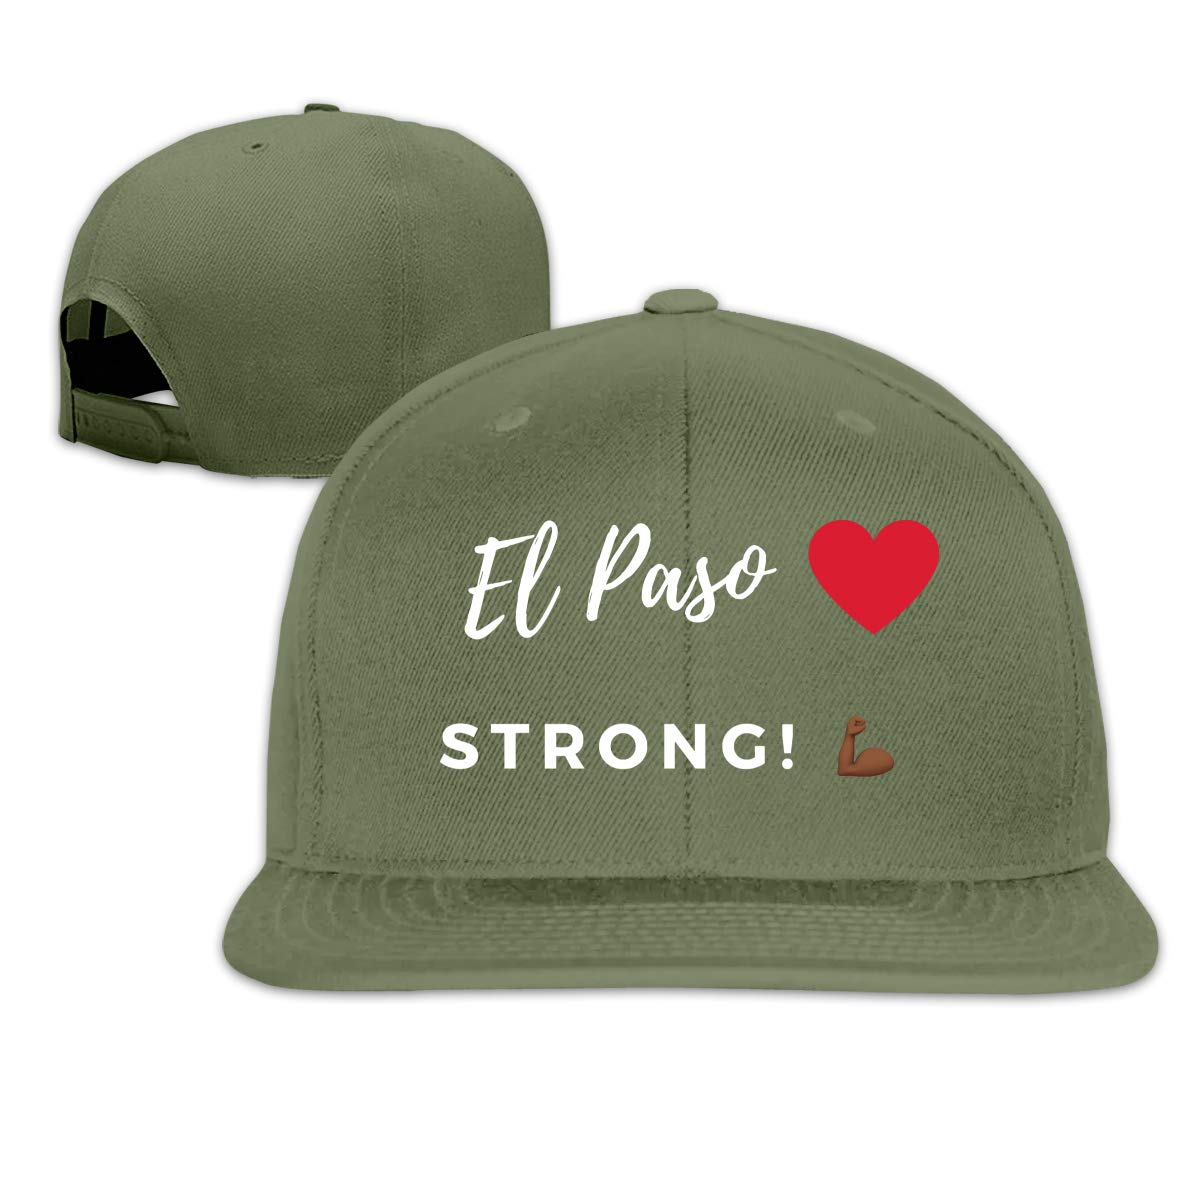 EL PASO is Strong Unisex Adult Hats Classic Baseball Caps Sports Hat Peaked Cap